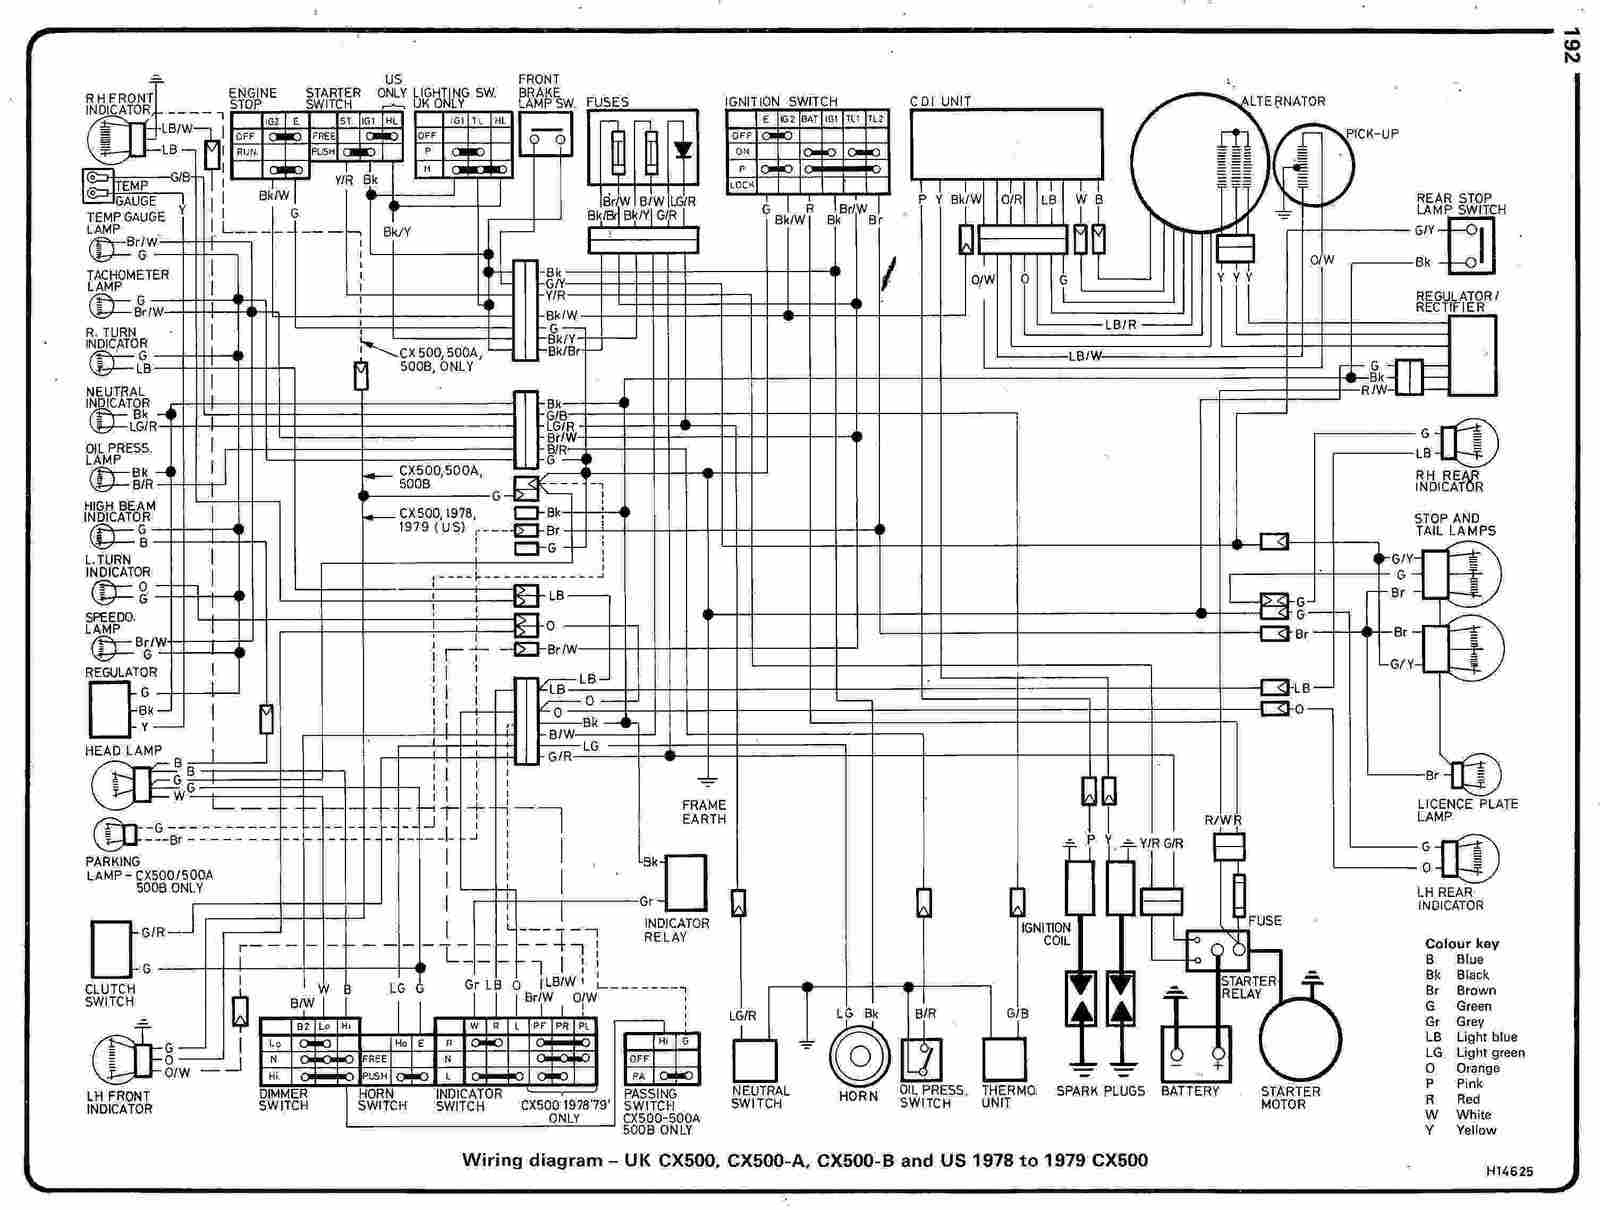 bk wiring diagram ford xh wiring diagram ford wiring diagrams